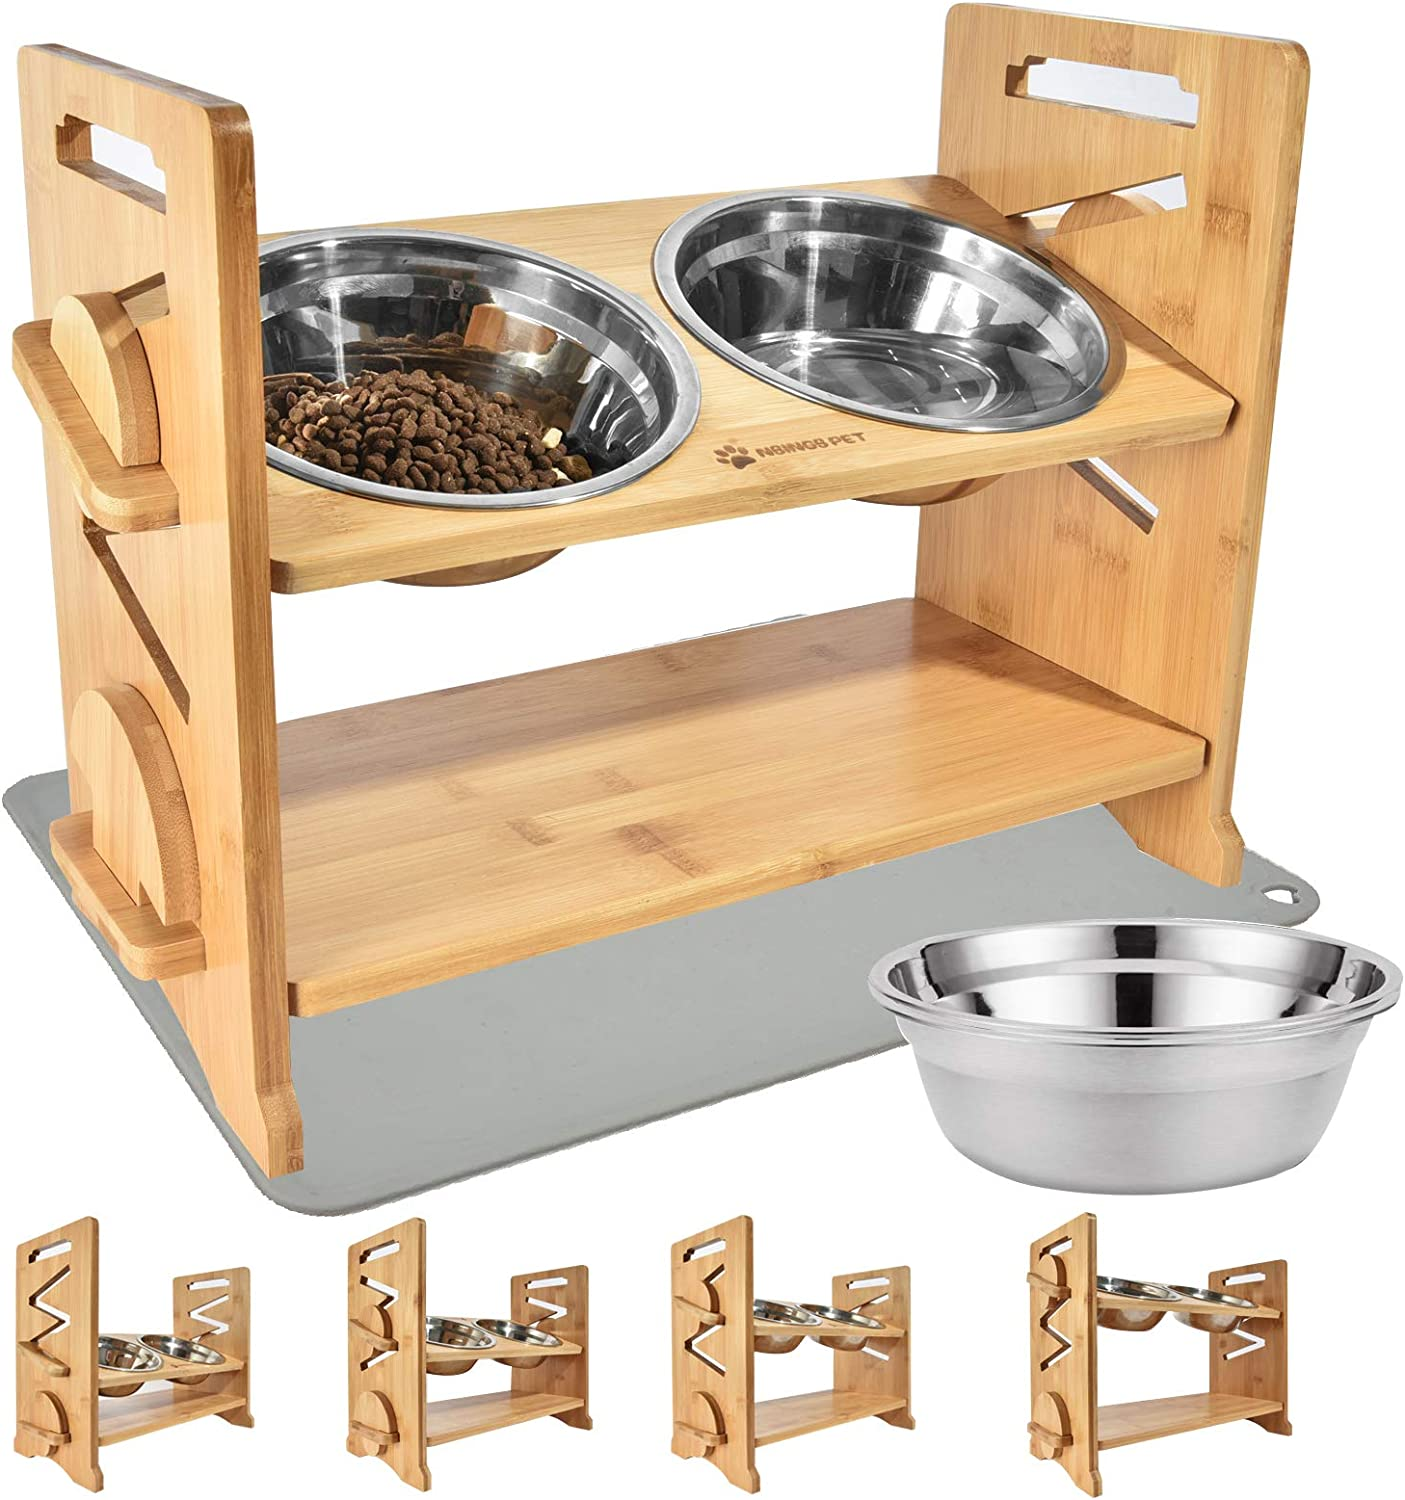 Raised Pet Jacksonville Mall Bowl for Cats and Dogs Small Adjustable Elevated Online limited product Dog